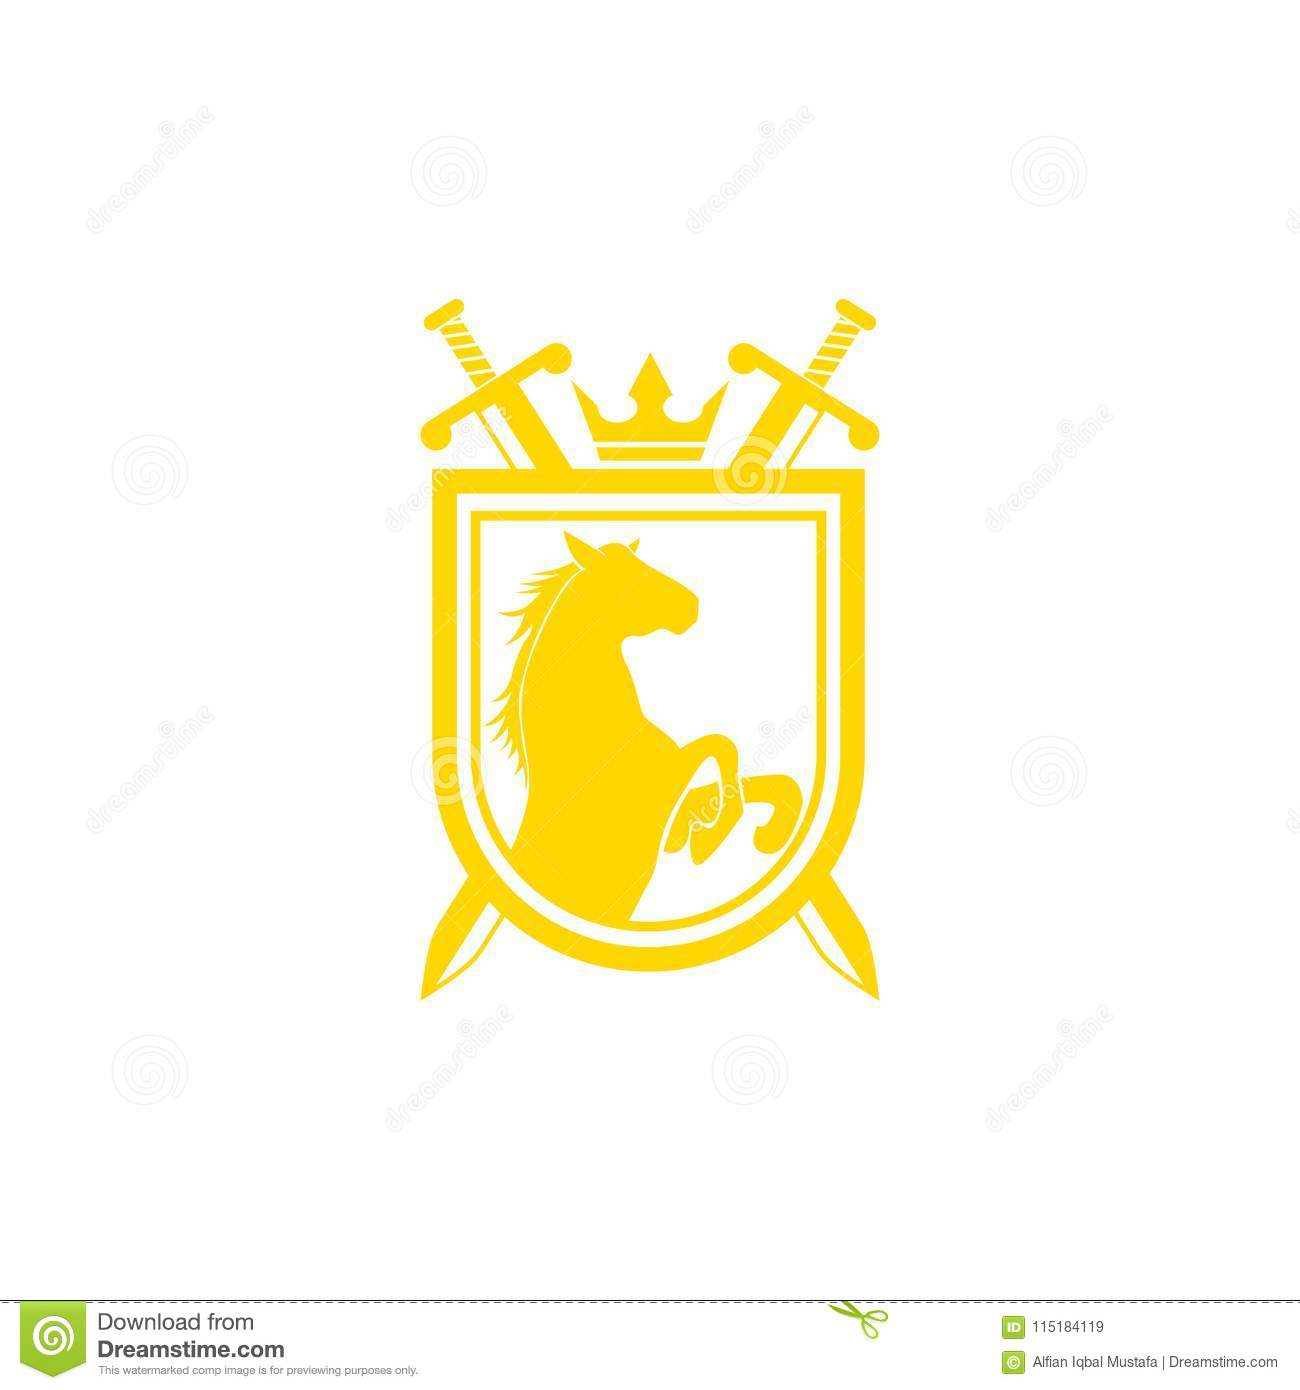 Horse Brand Logo Design Vector Retro Golden Crest With Shield And Horses Heraldic Template Luxury Concept Can Be Used As Icon